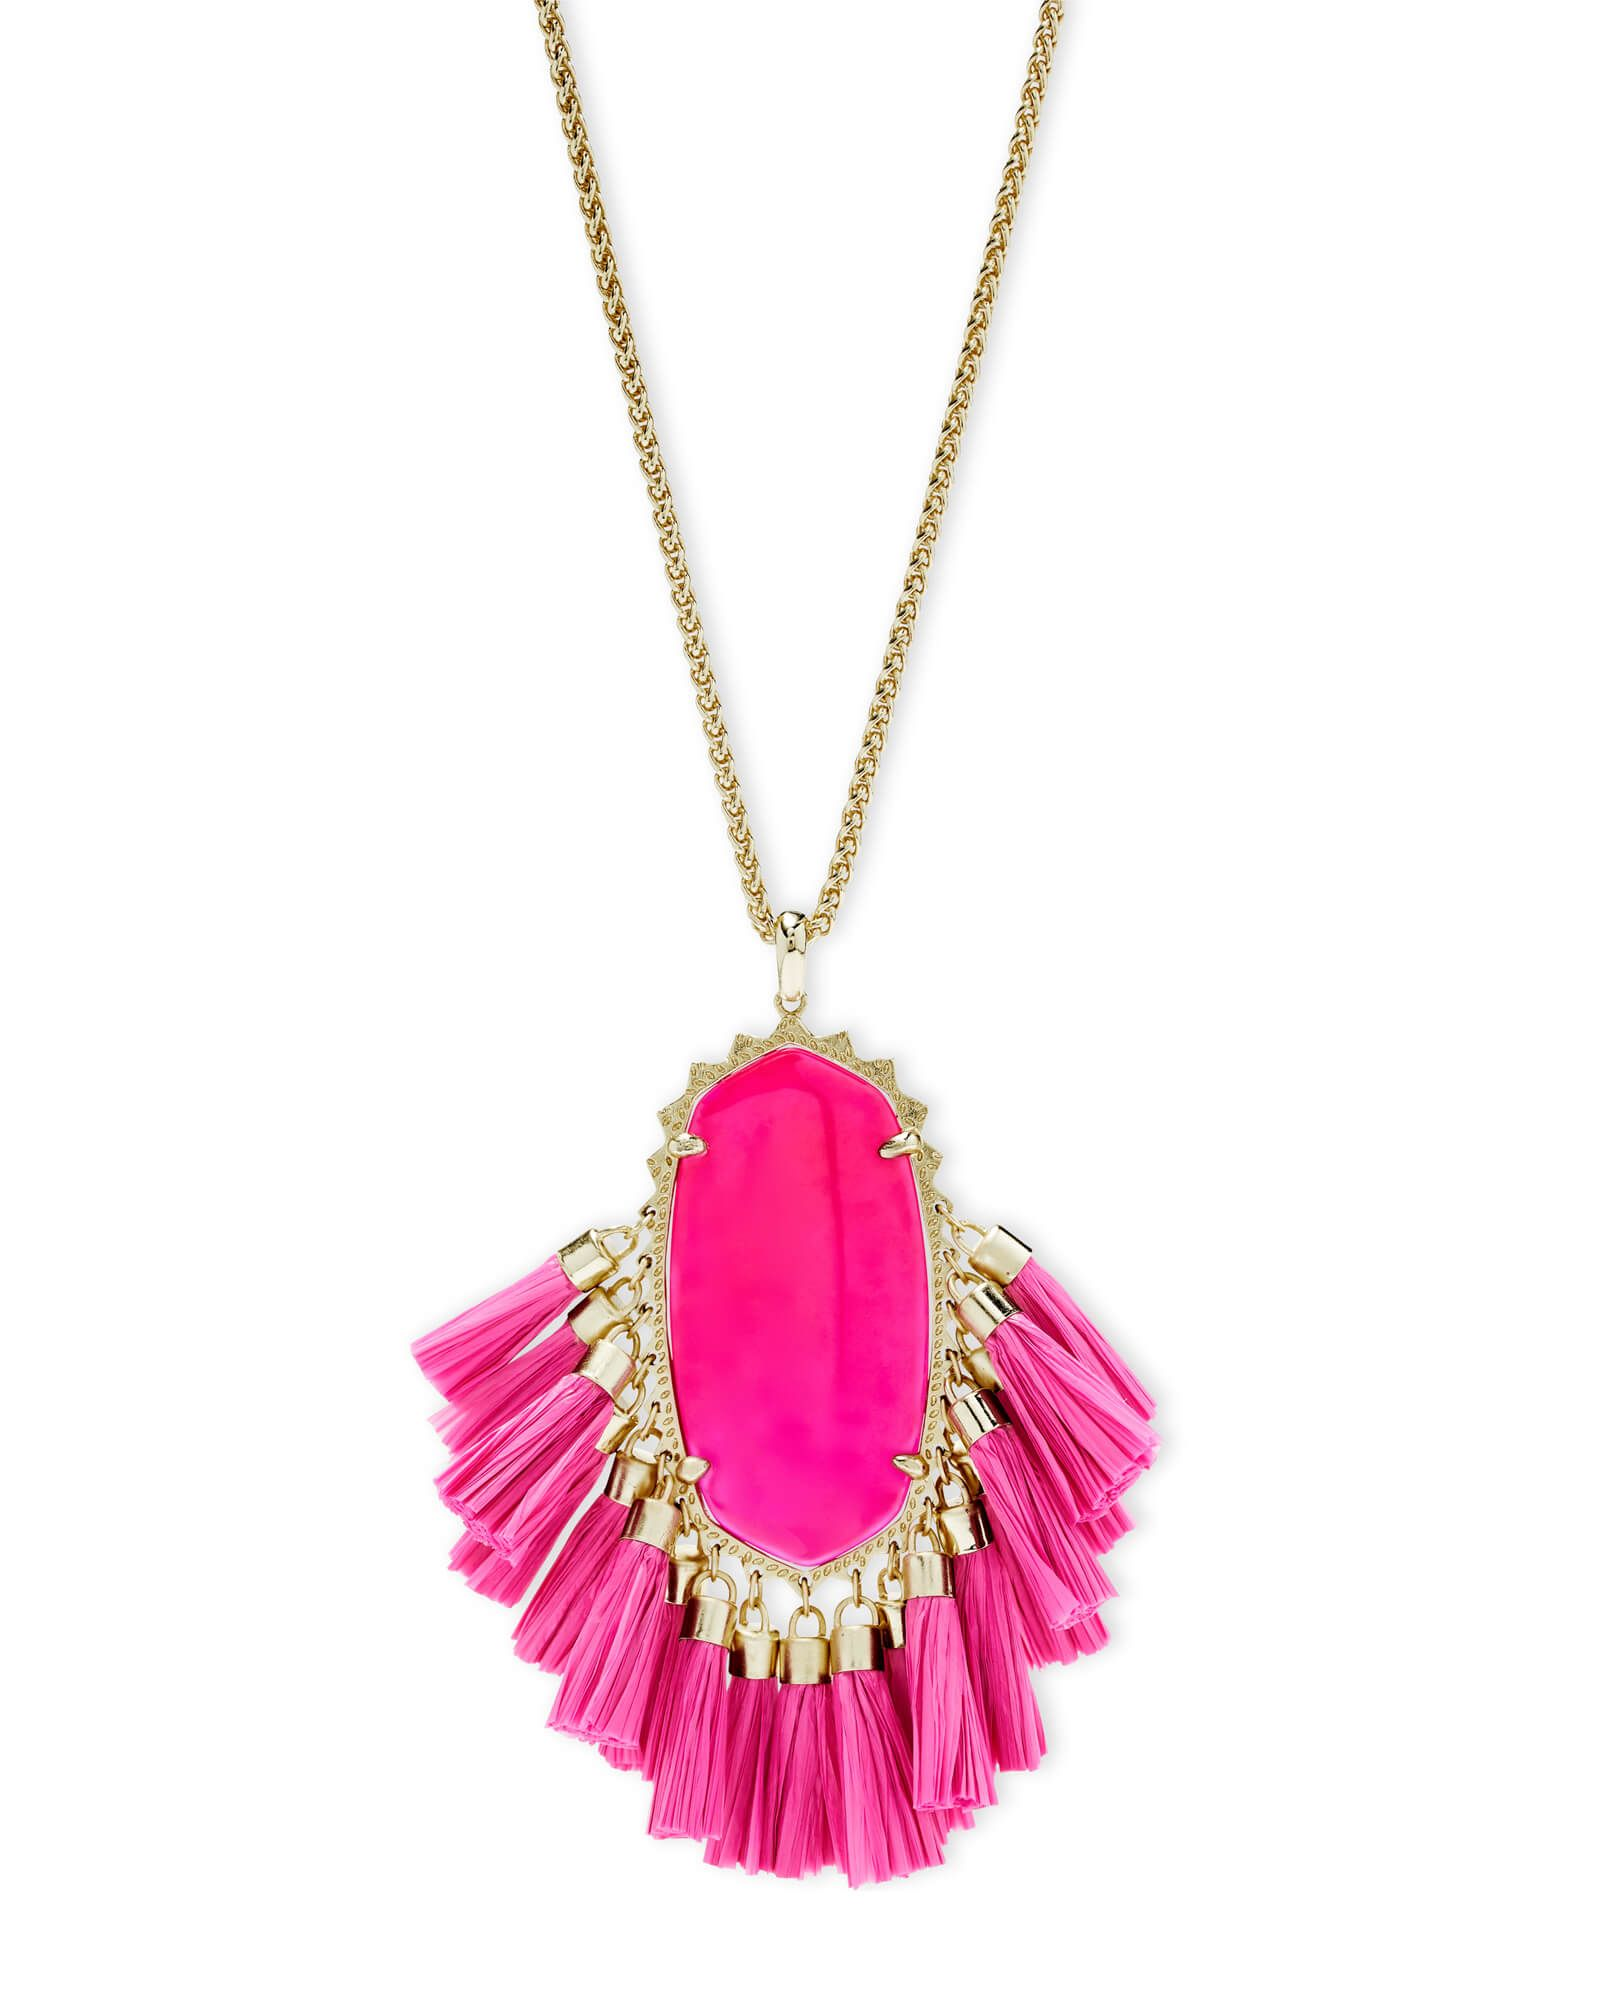 Betsy gold long pendant necklace in pink agate kendra scott